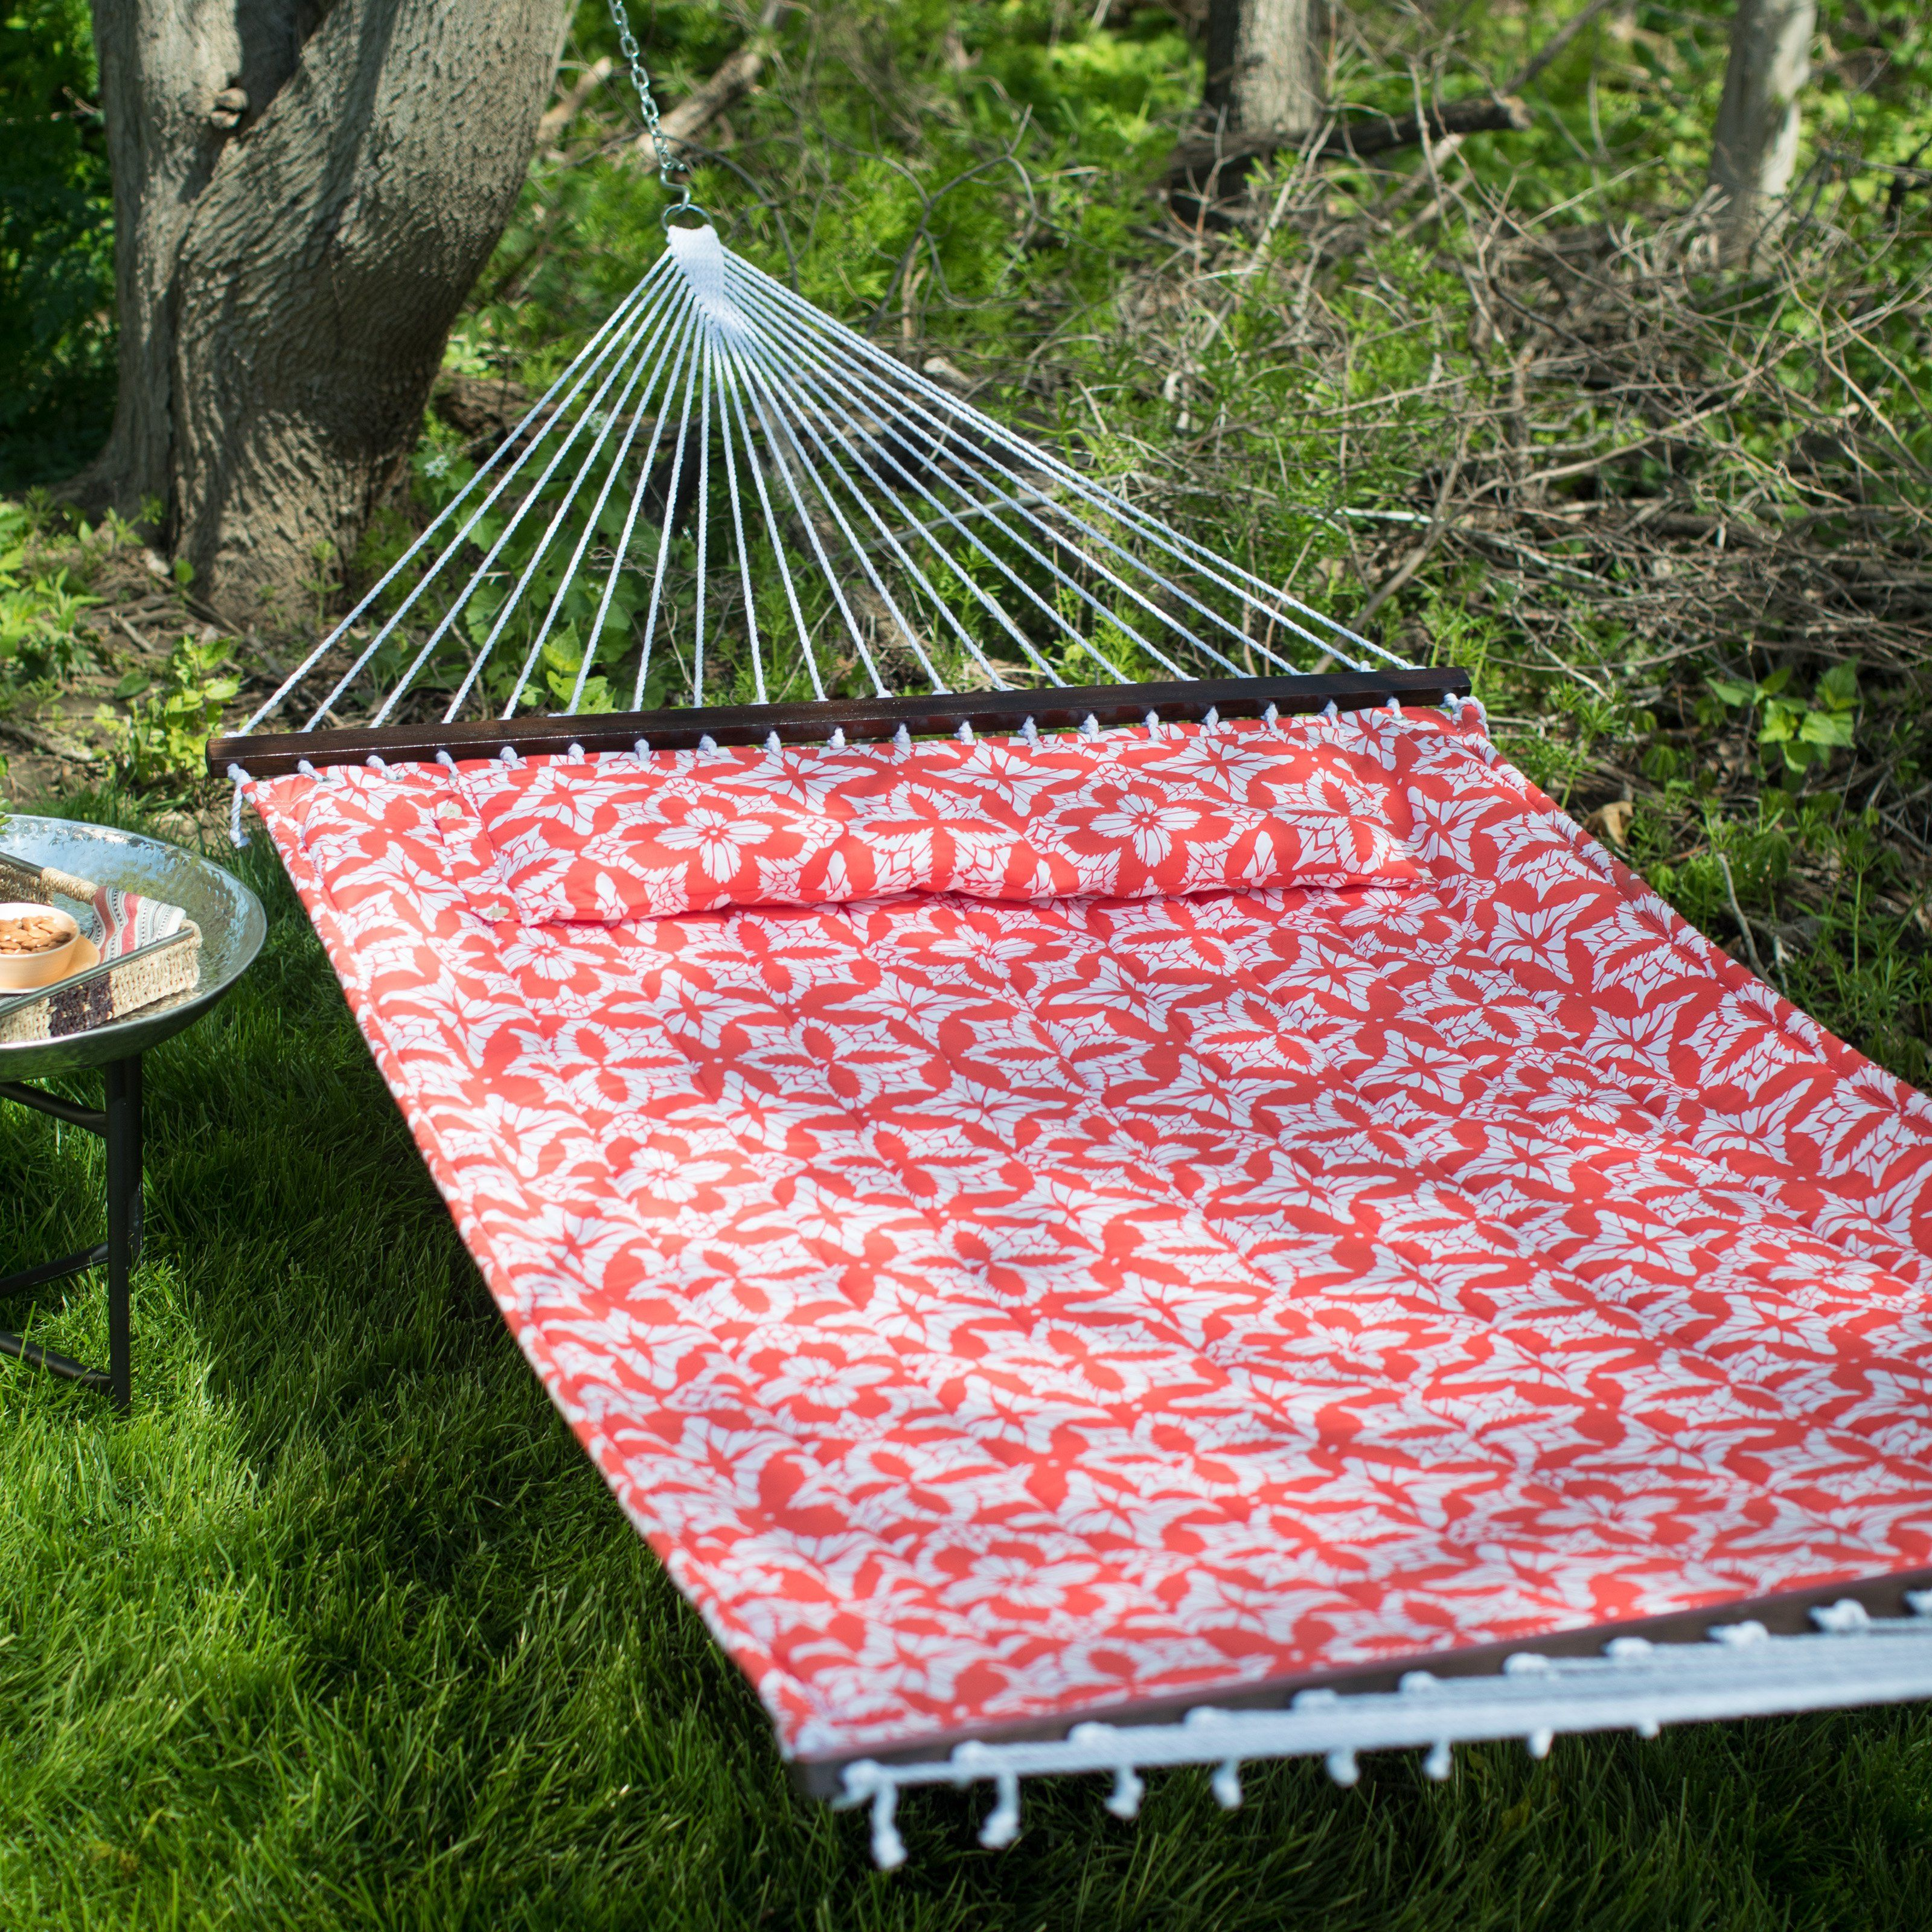 Island bay kula maui ft quilted person hammock coral